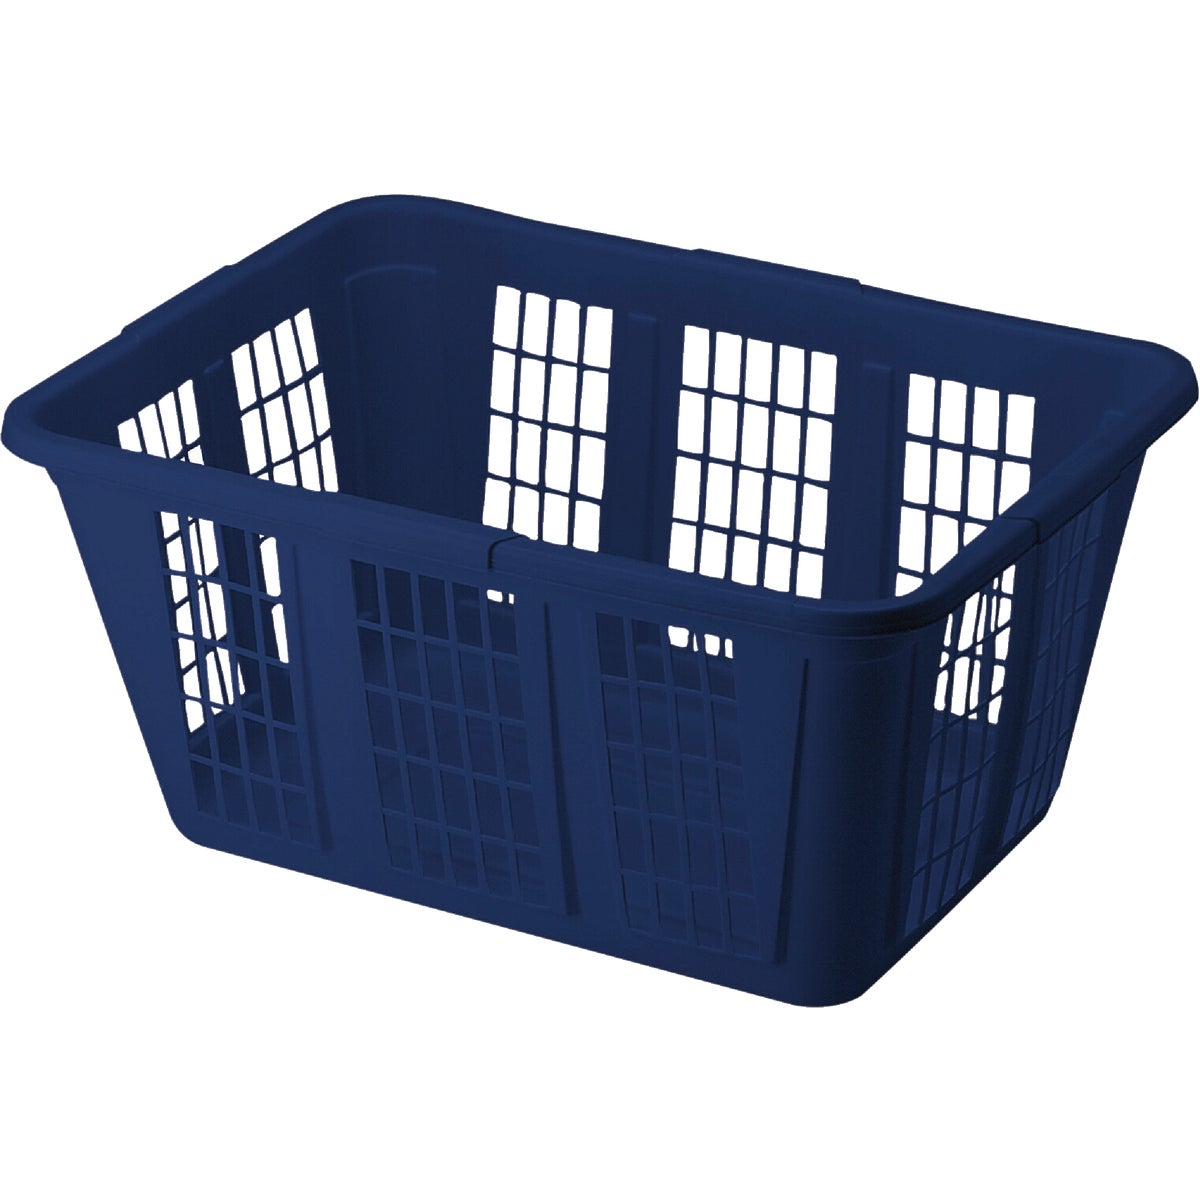 BLUE LAUNDRY BASKET - FG296585ROYBL by Rubbermaid Home